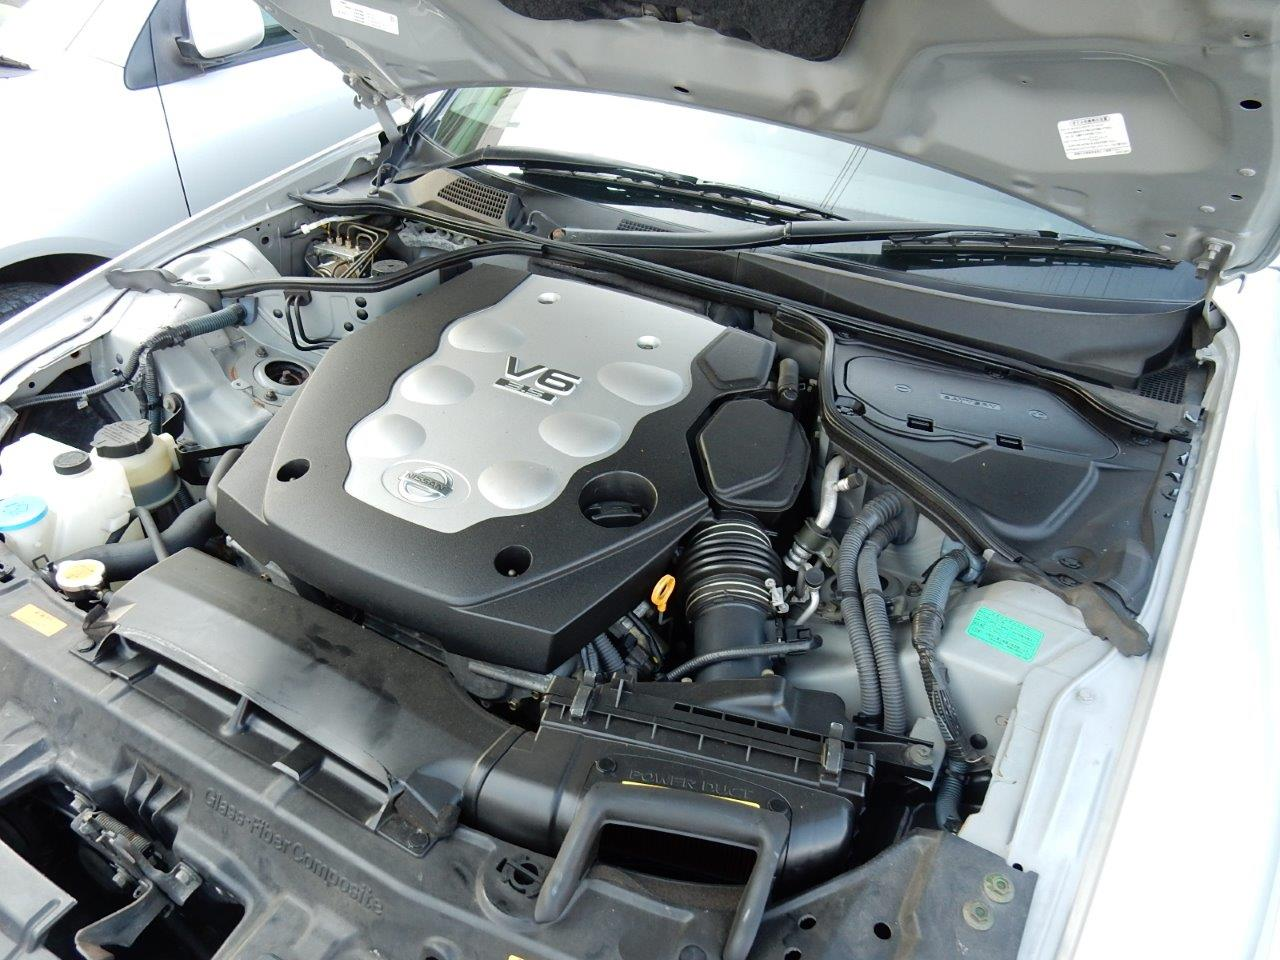 2004 Nissan Stagea AR-X engine